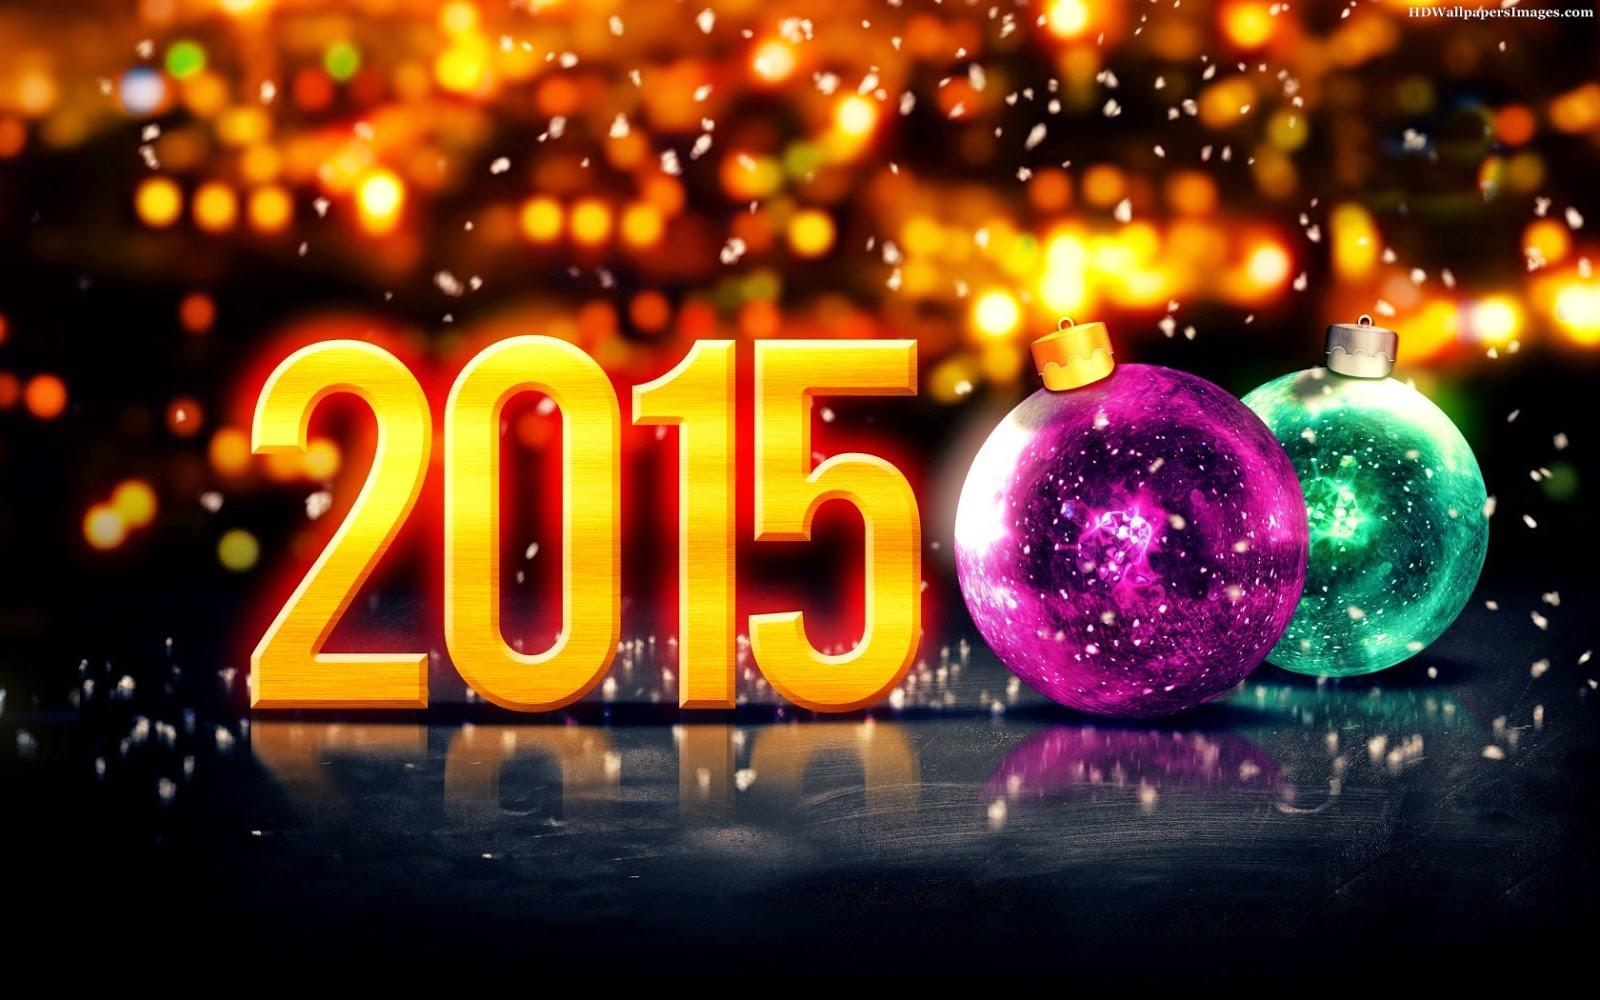 Merry-Christmas-and-Happy-New-Year-2015-Wallpaper22